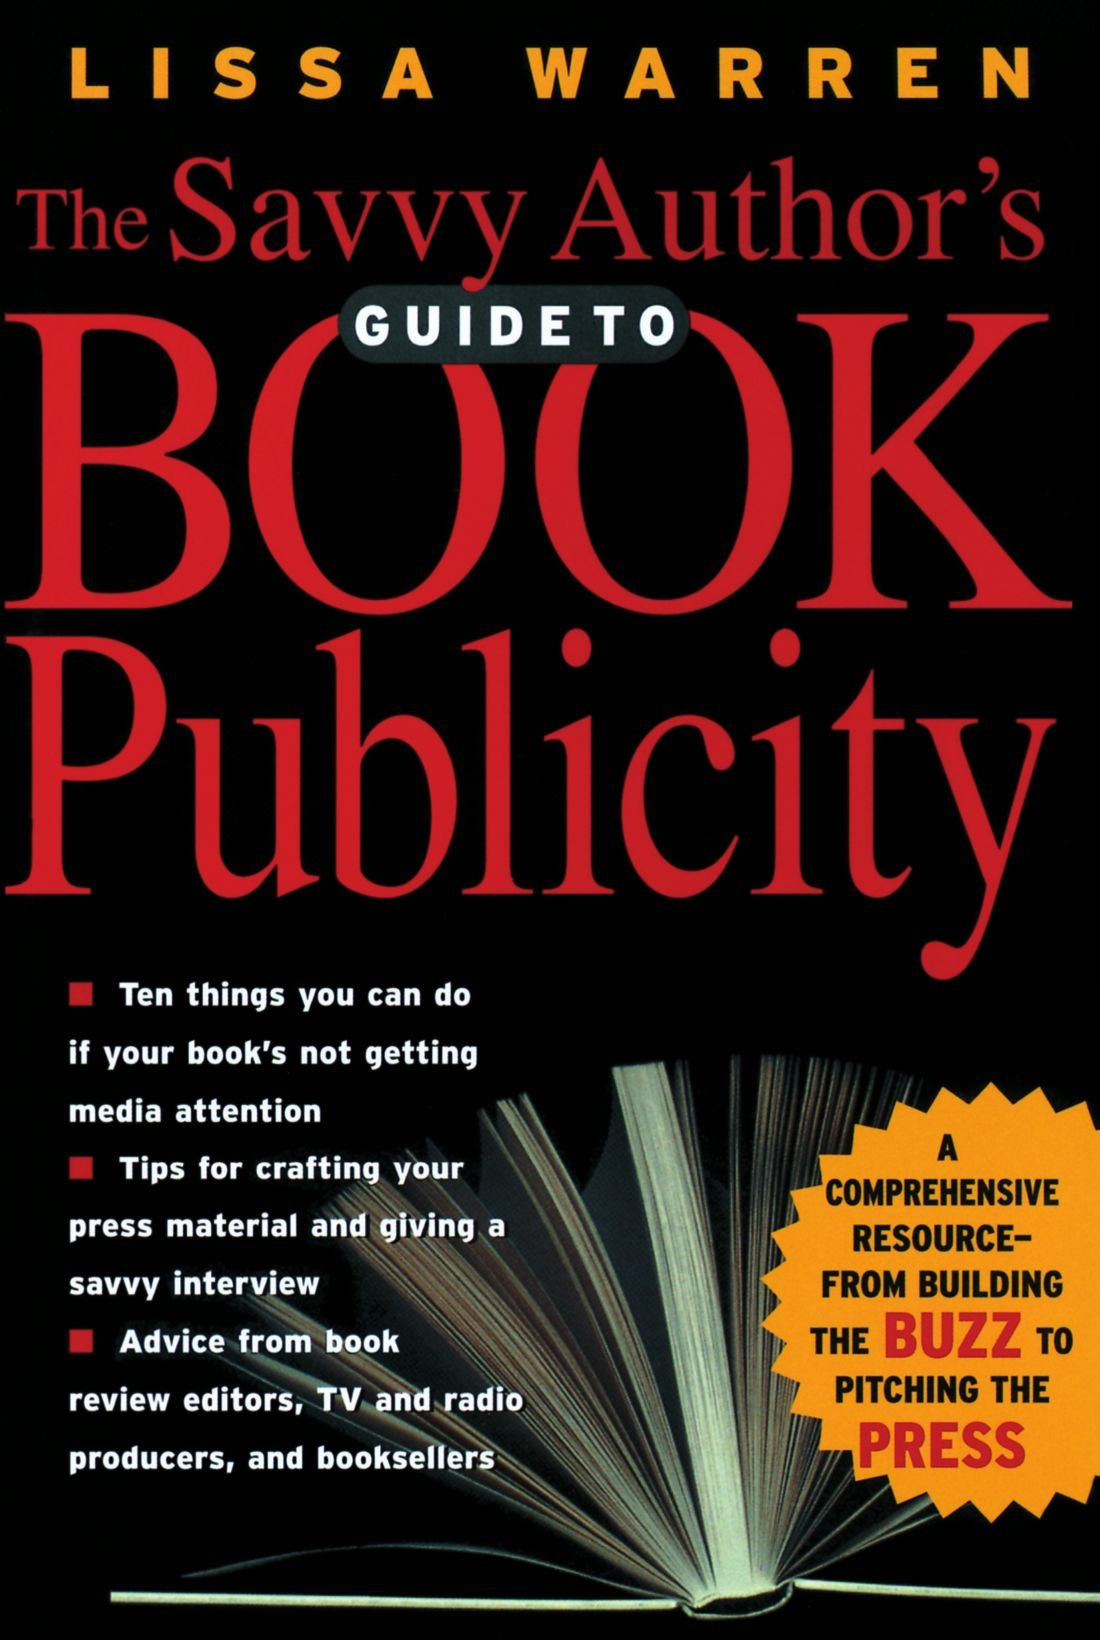 The Savvy Author's Guide To Book Publicity: A Comprehensive Resource -- from Building the Buzz to Pitching the Press by Da Capo Lifelong Books